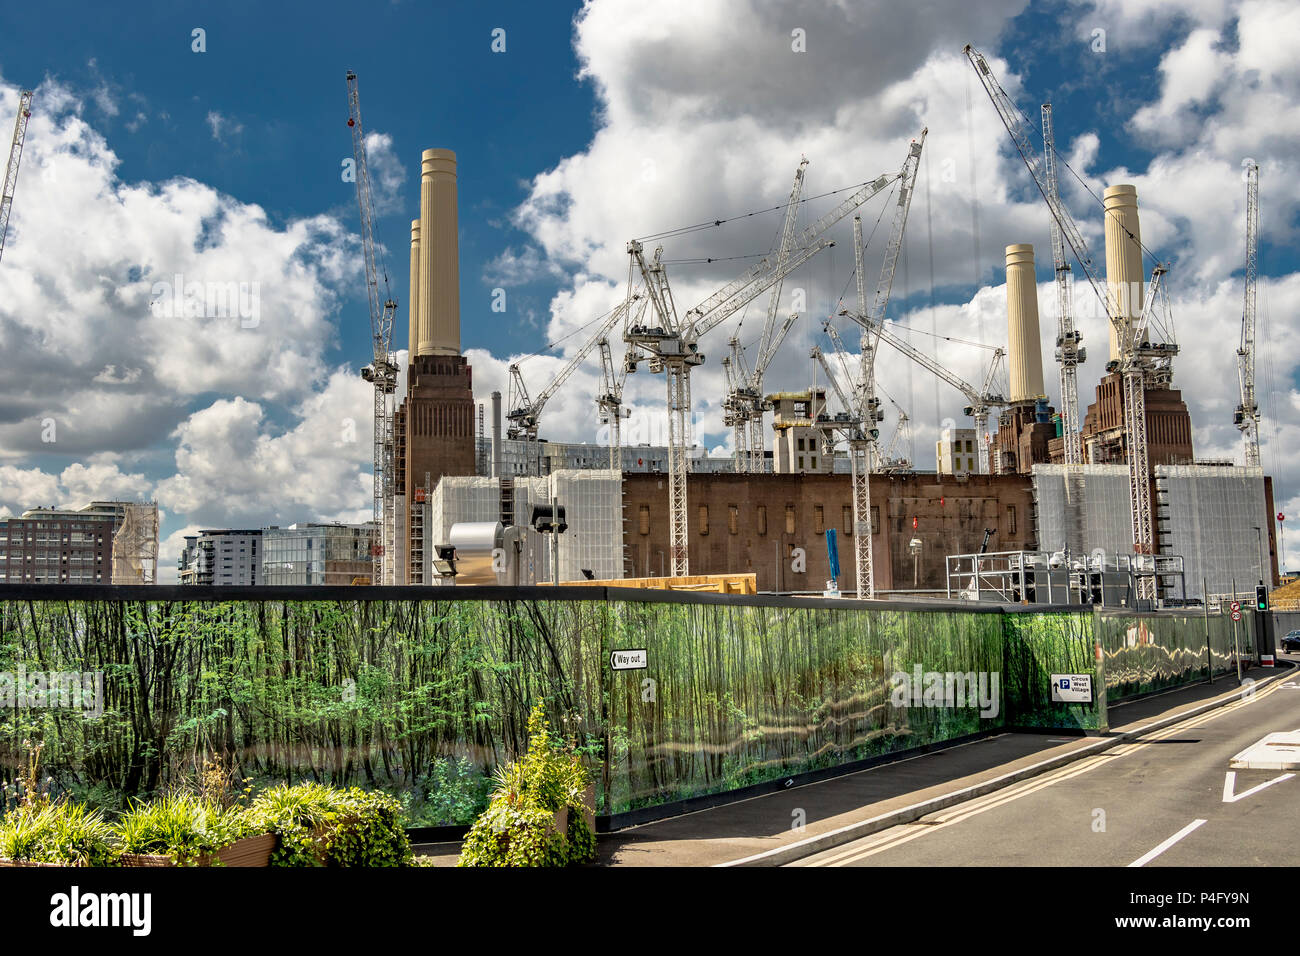 Construction continues on The Battersea Power Station redevelopment, a £9 billion project to regenerate the former Power station and London landmark - Stock Image